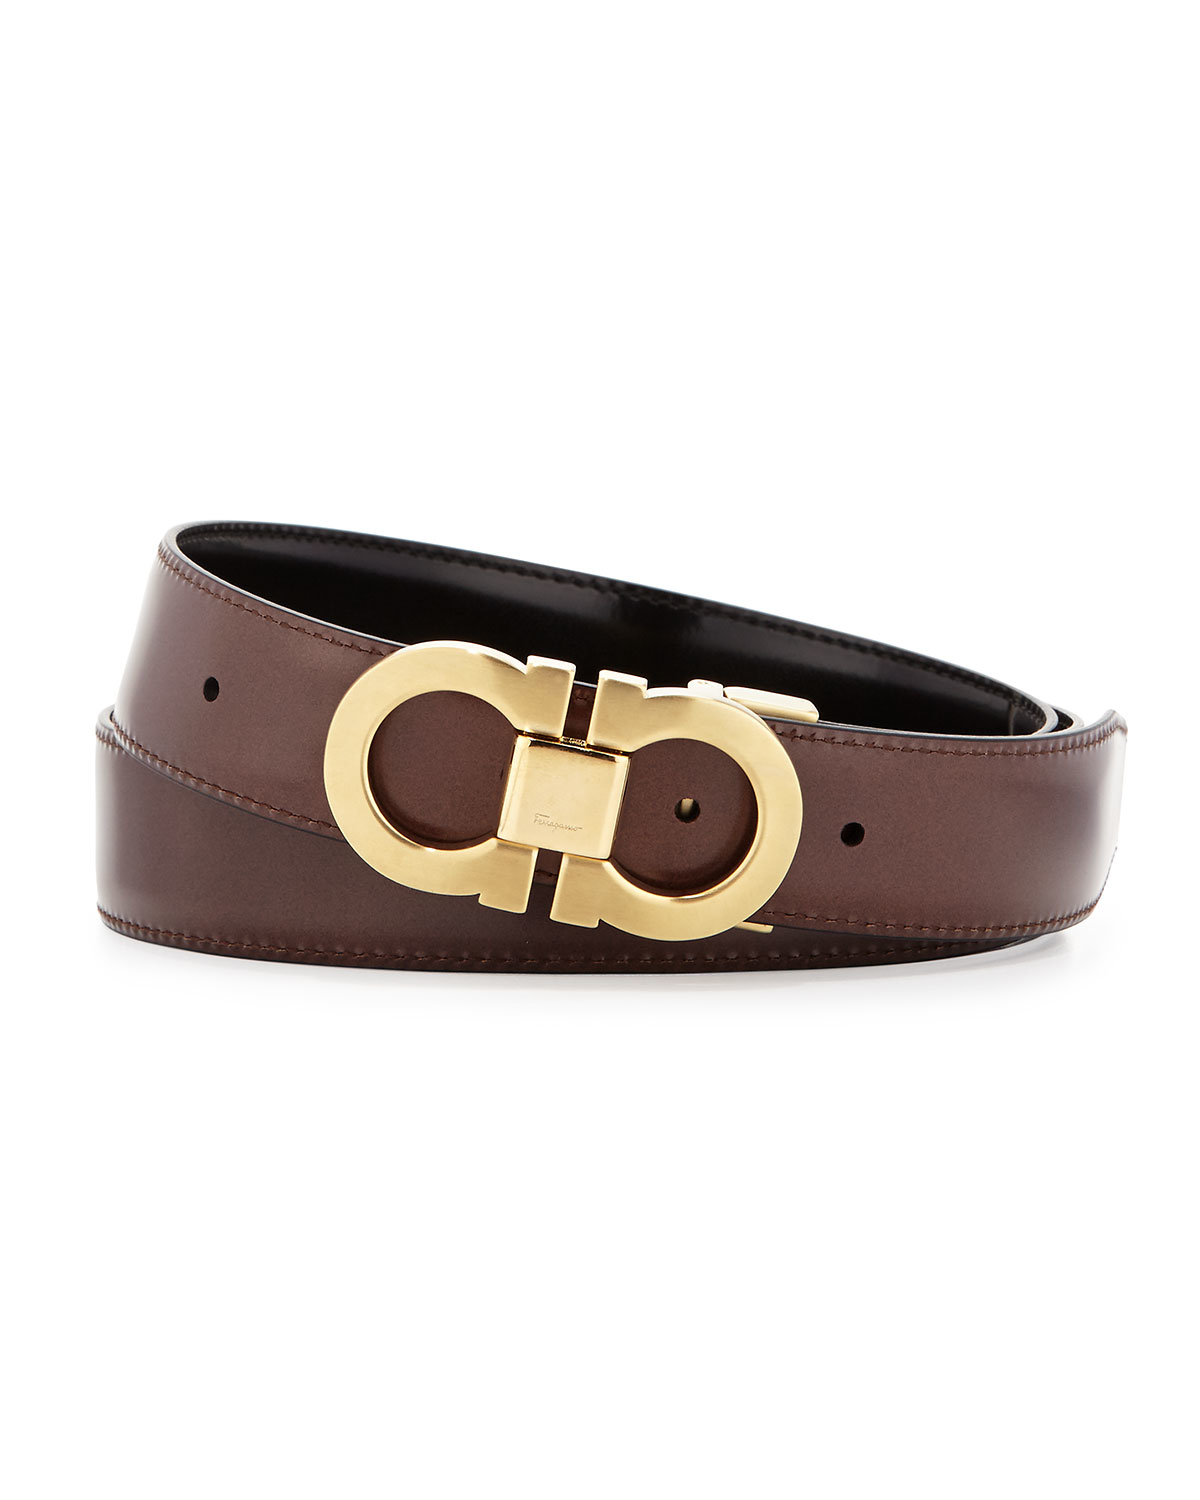 ferragamo reversible leather belt boxed gift set in brown